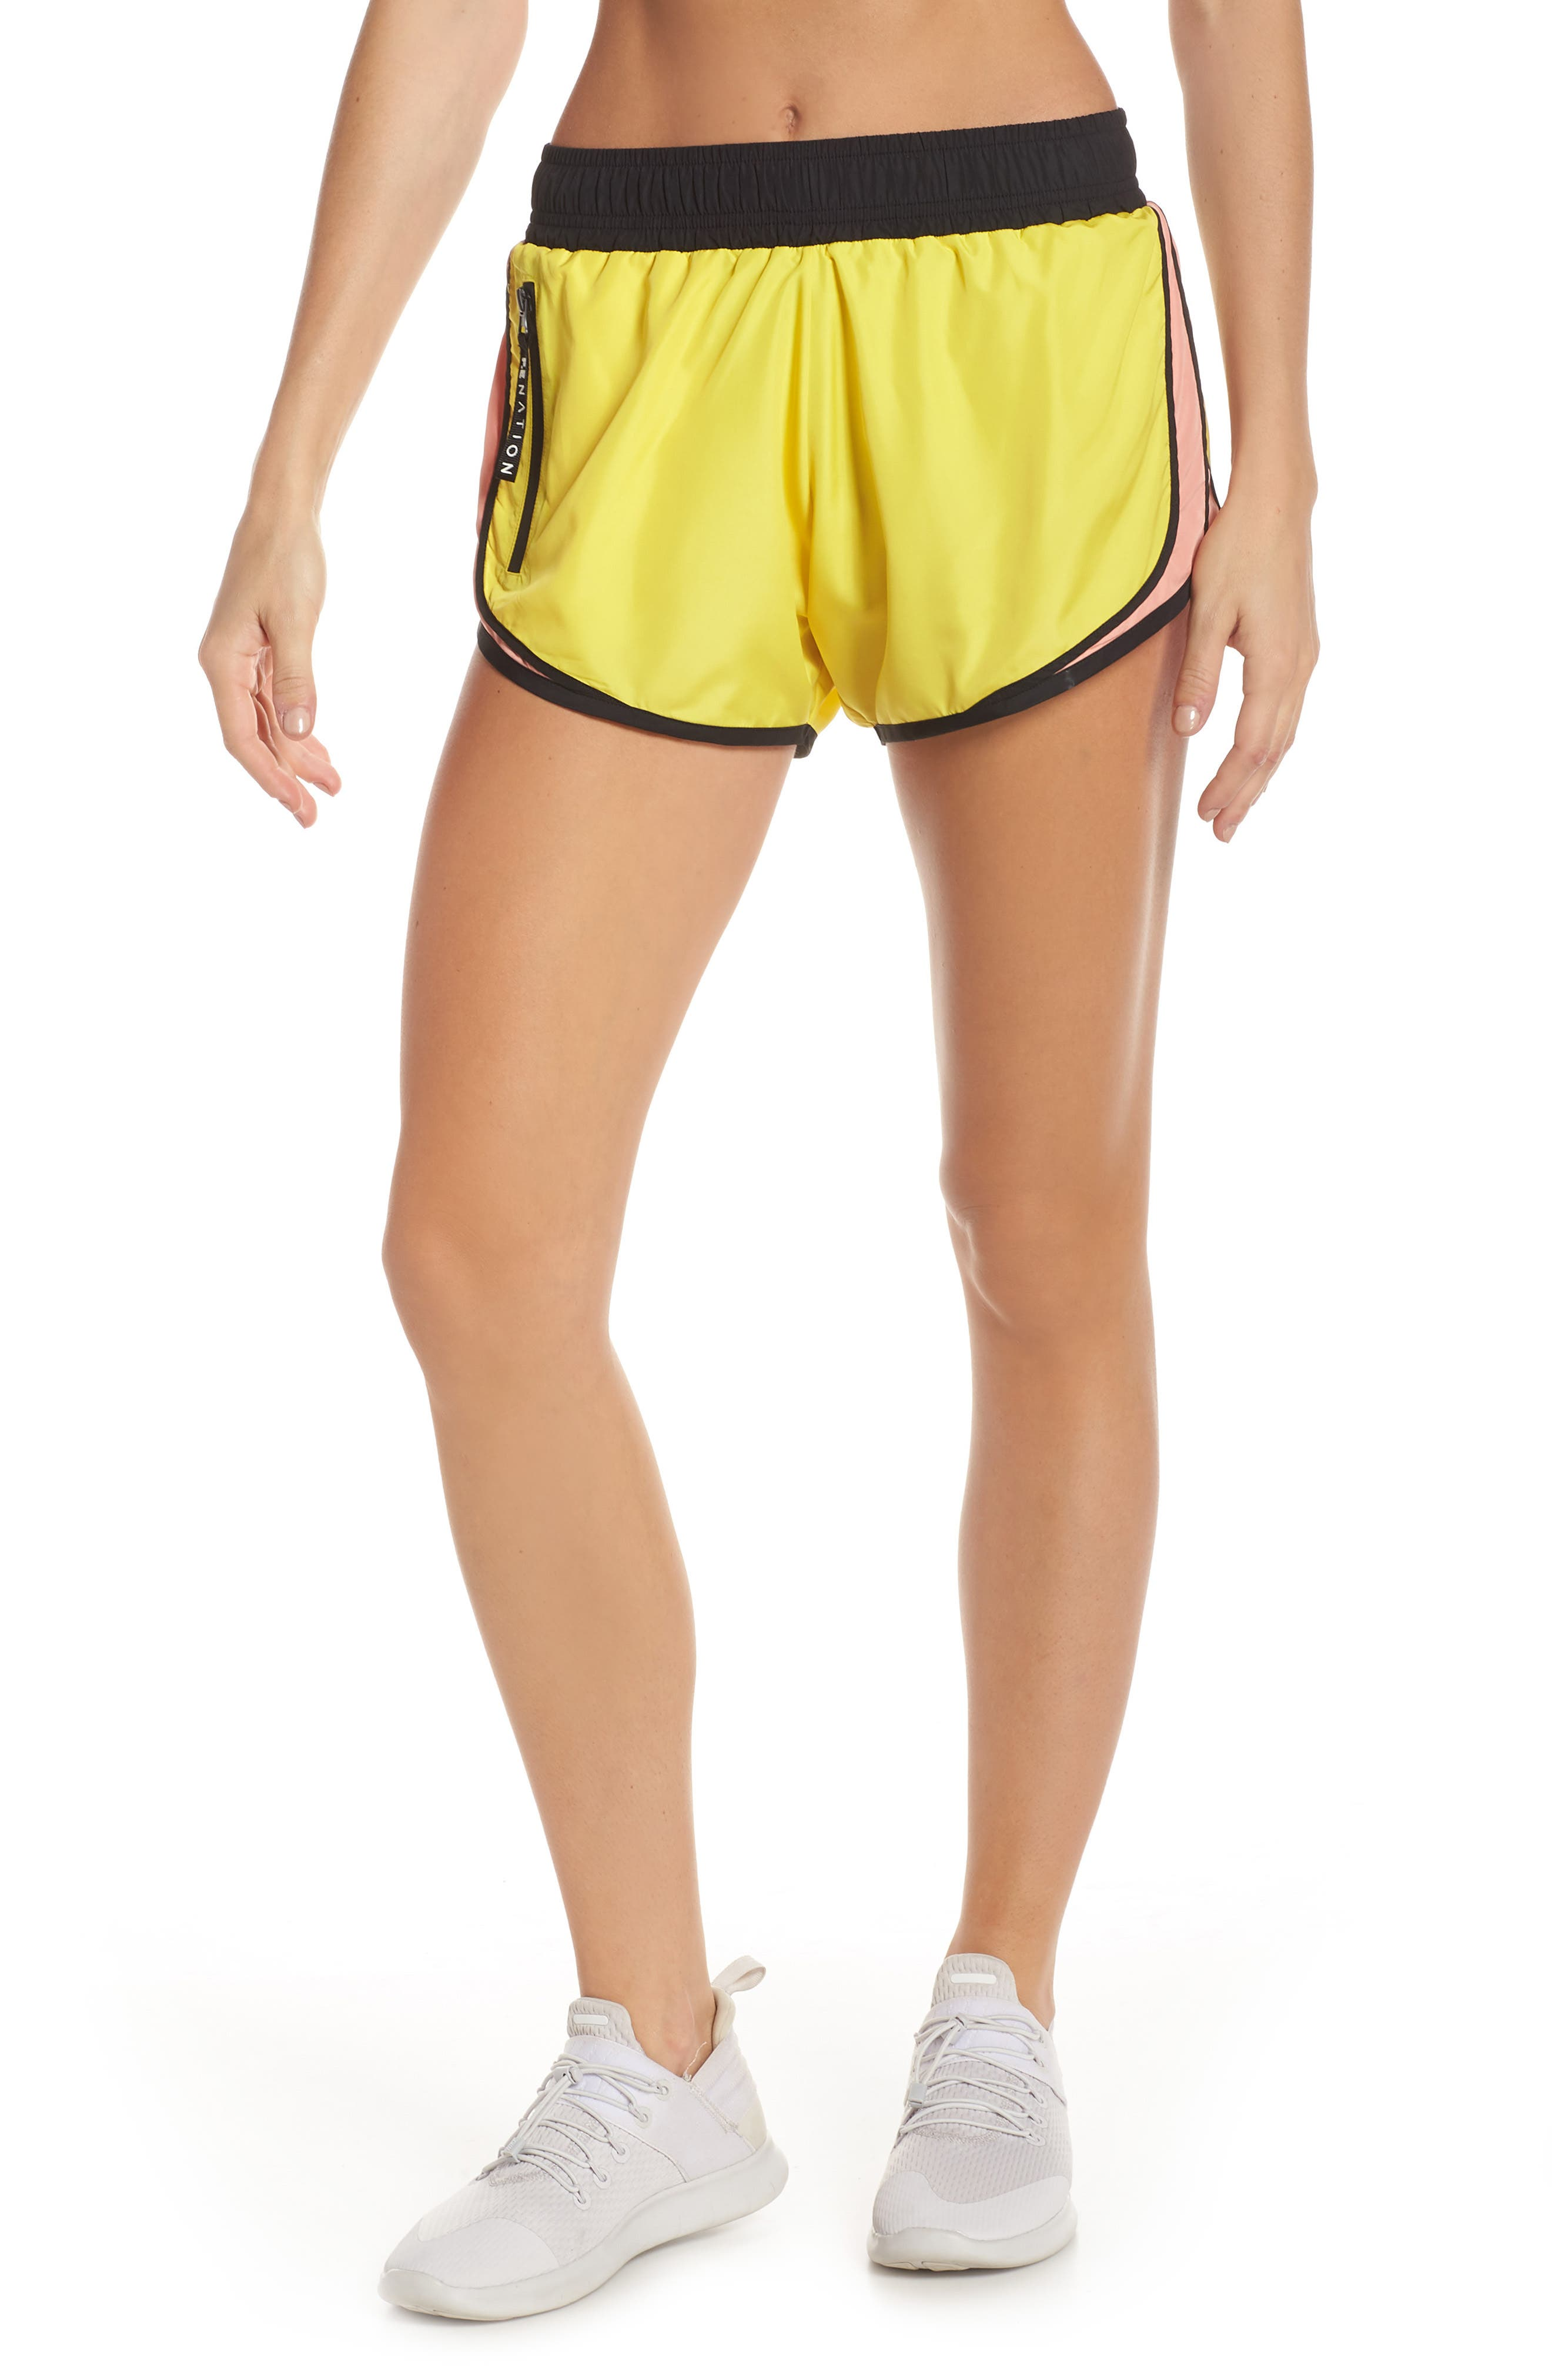 Sprint Vision Shorts,                             Main thumbnail 1, color,                             YELLOW